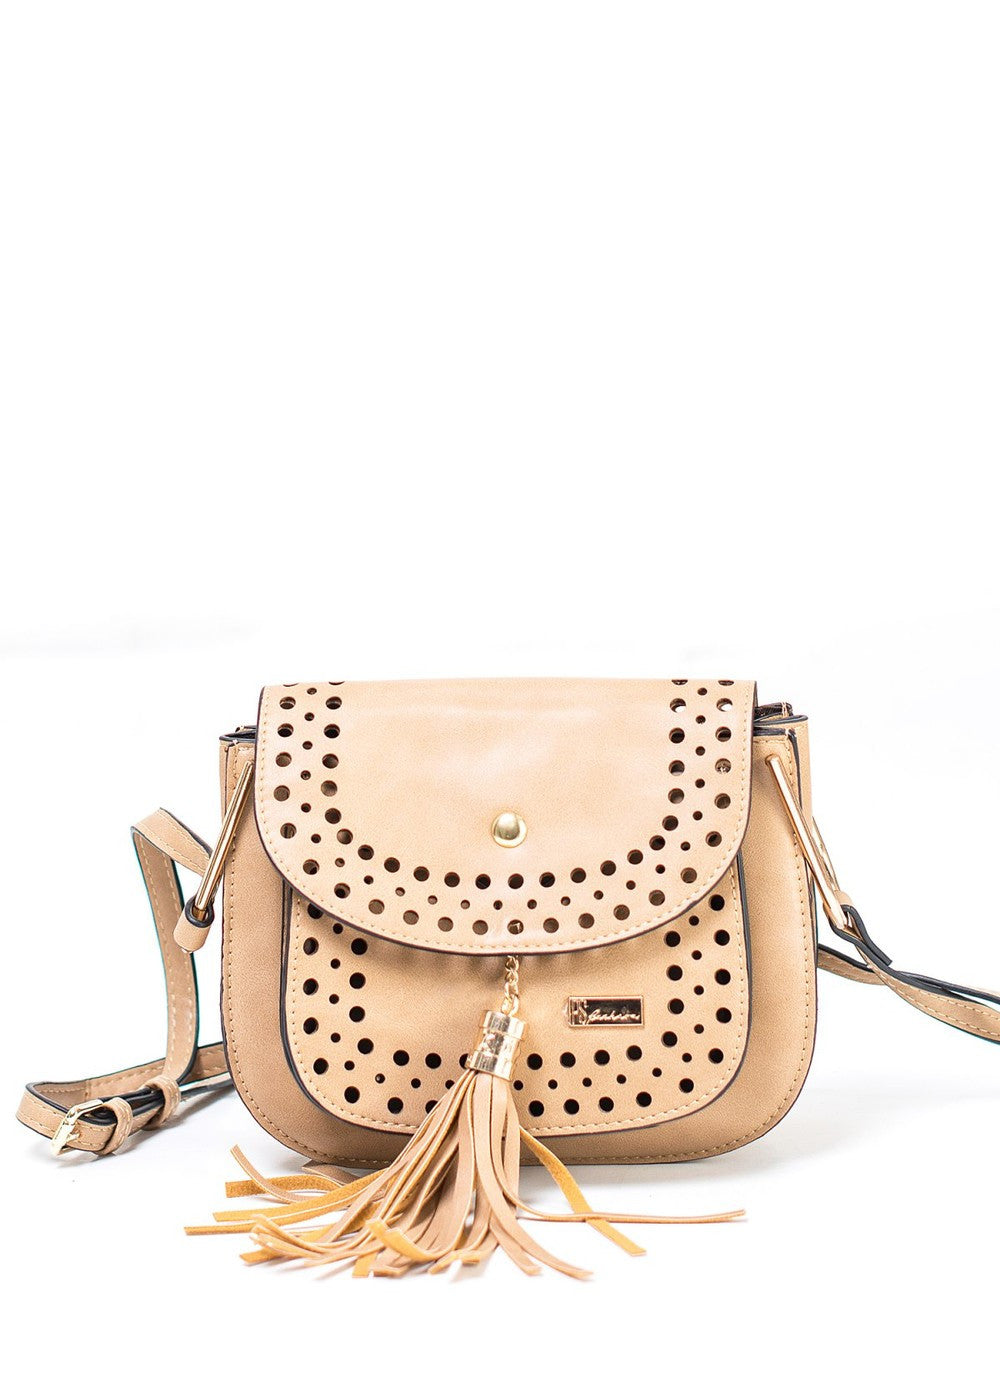 Beige Cross-body Bag